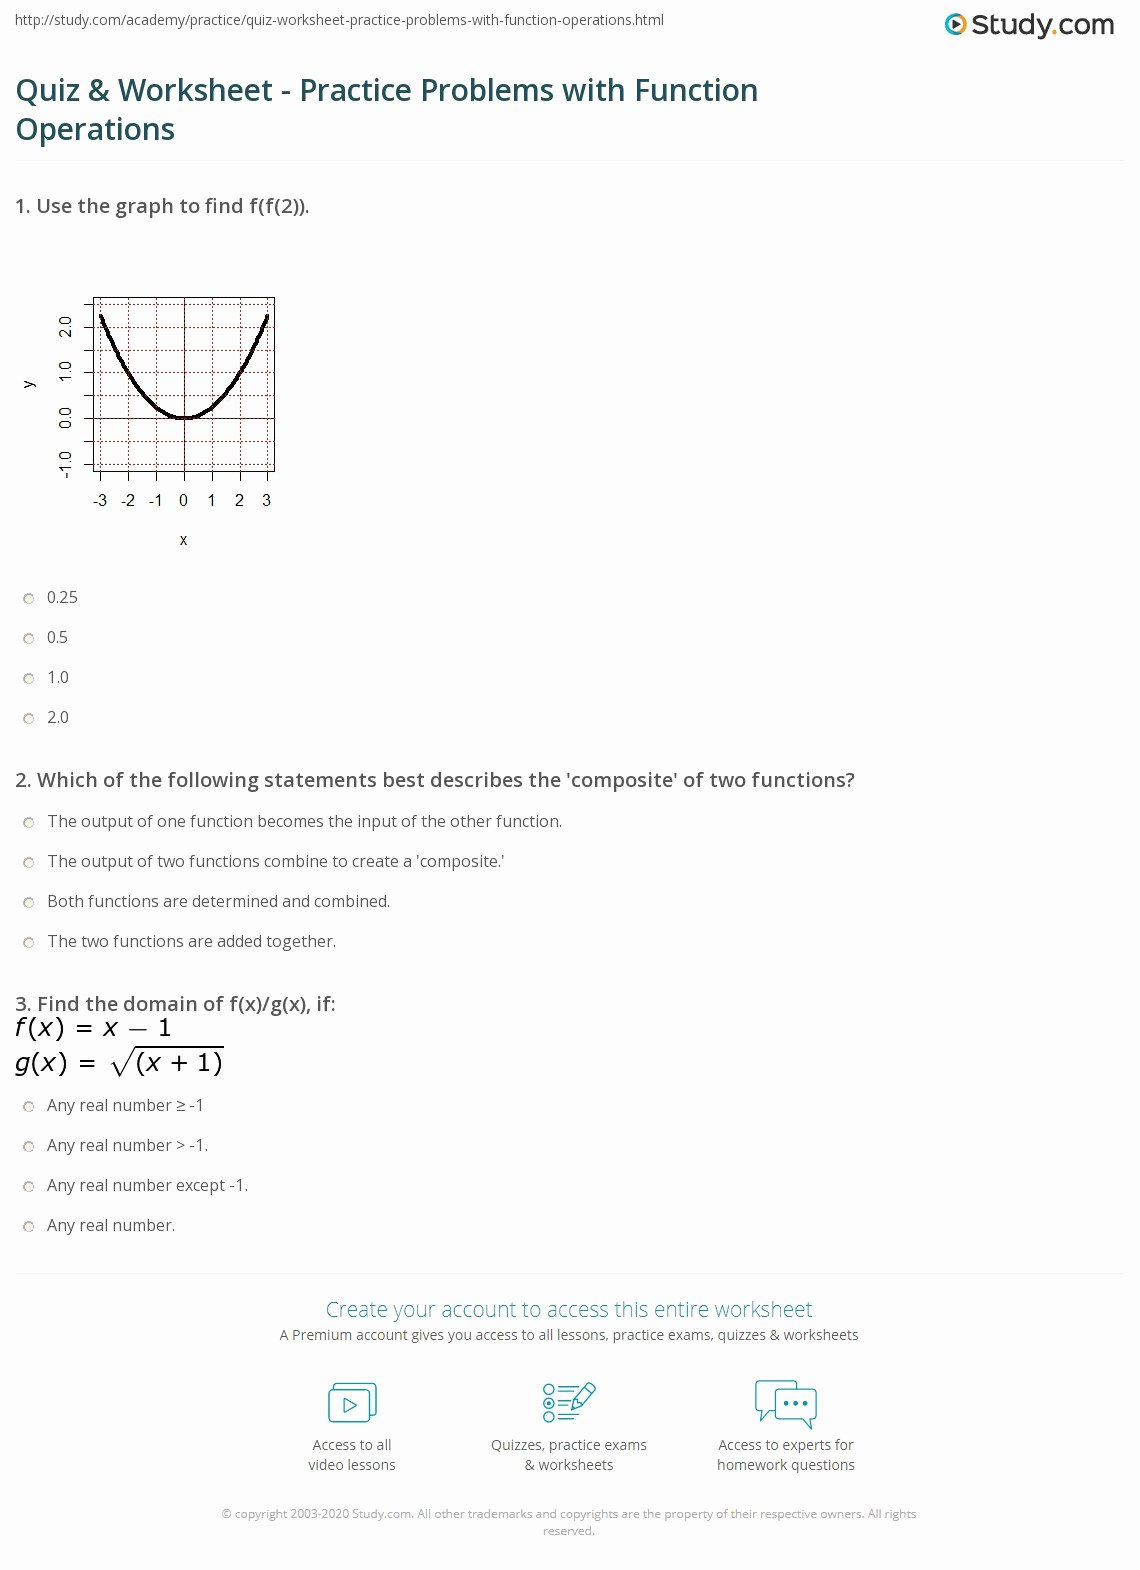 Function Operations and Composition Worksheet Free Quiz & Worksheet Practice Problems with Function